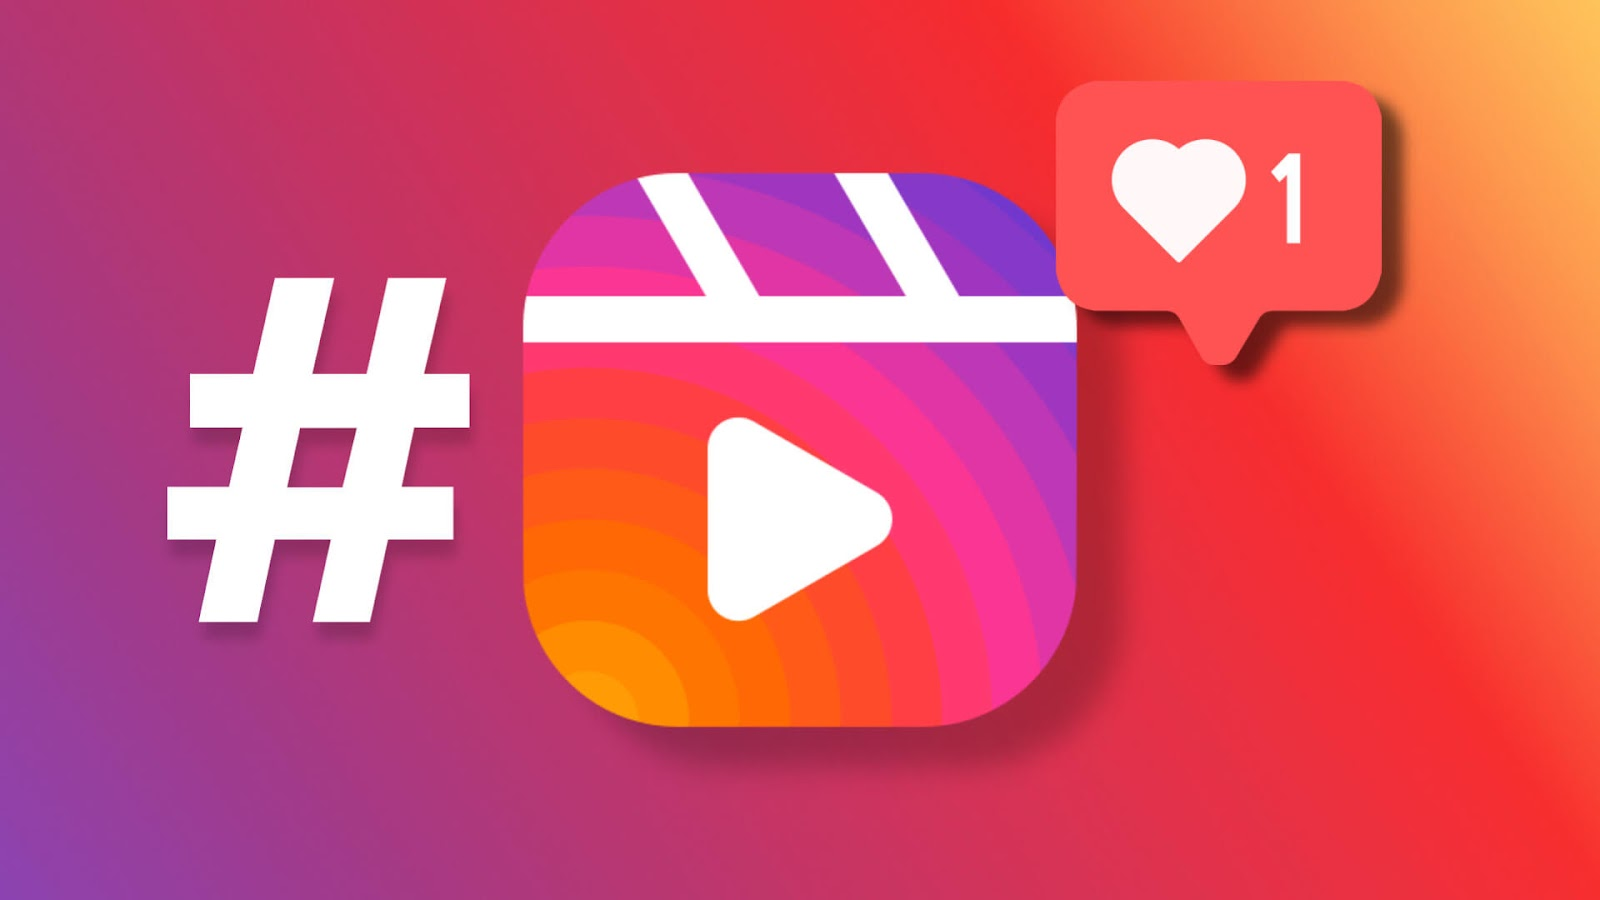 Best hashtags to get likes on Instagram reels